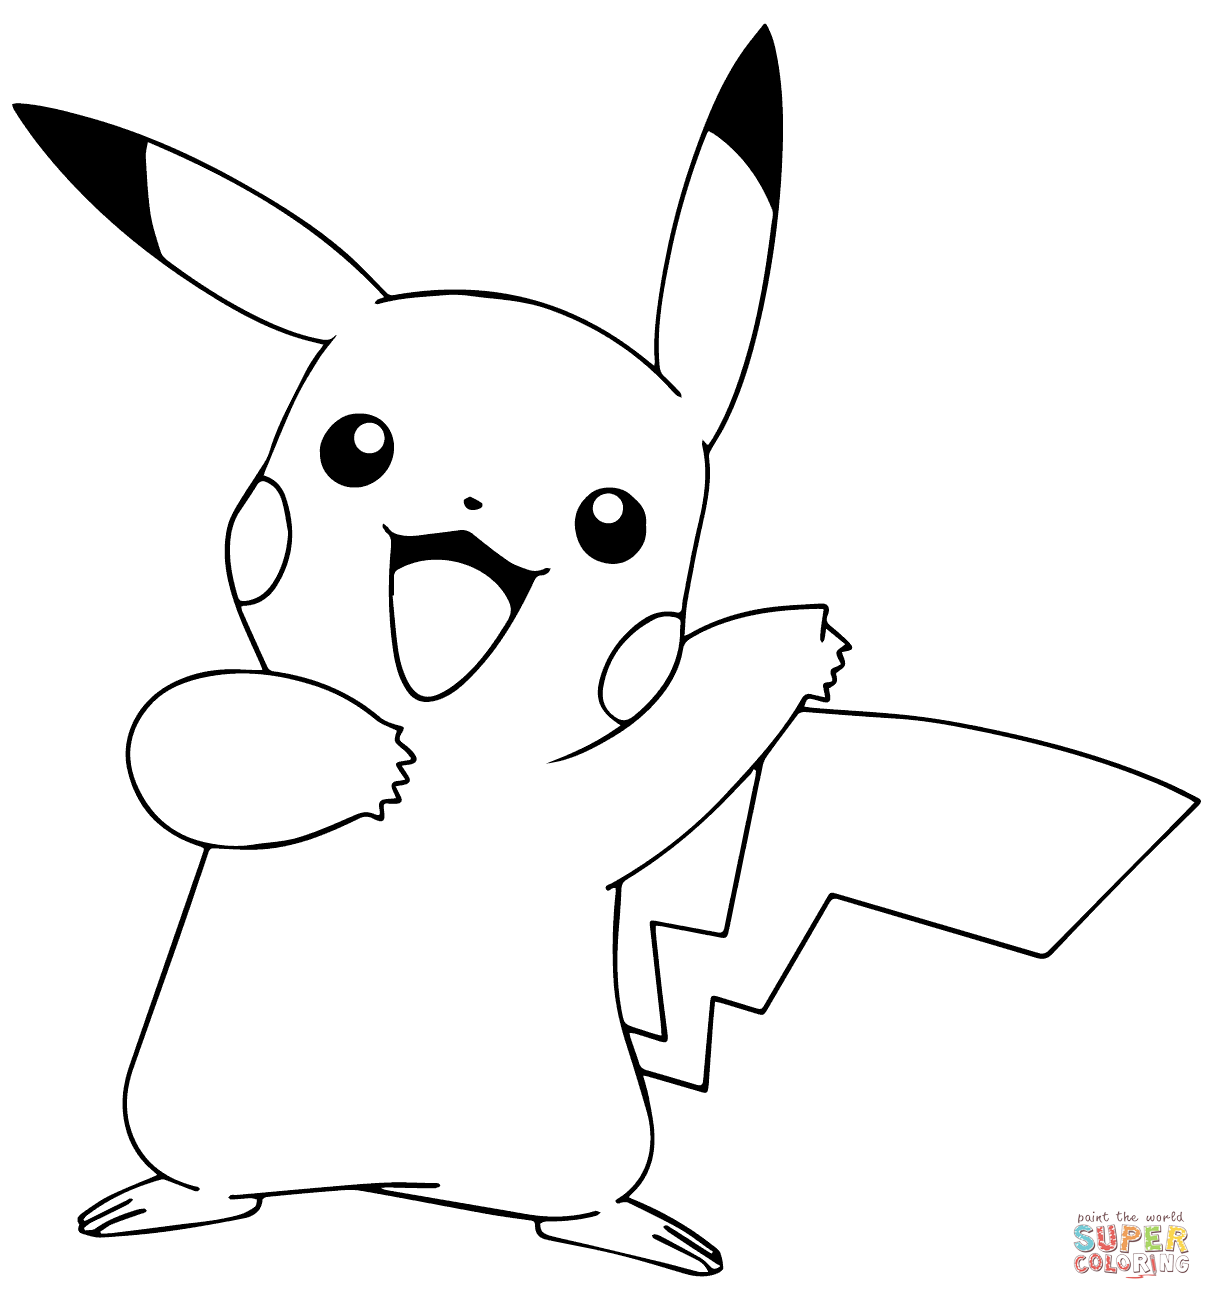 Pikachu From Pokemon Go Pikachu Coloring Page Pokemon Coloring Pokemon Coloring Pages